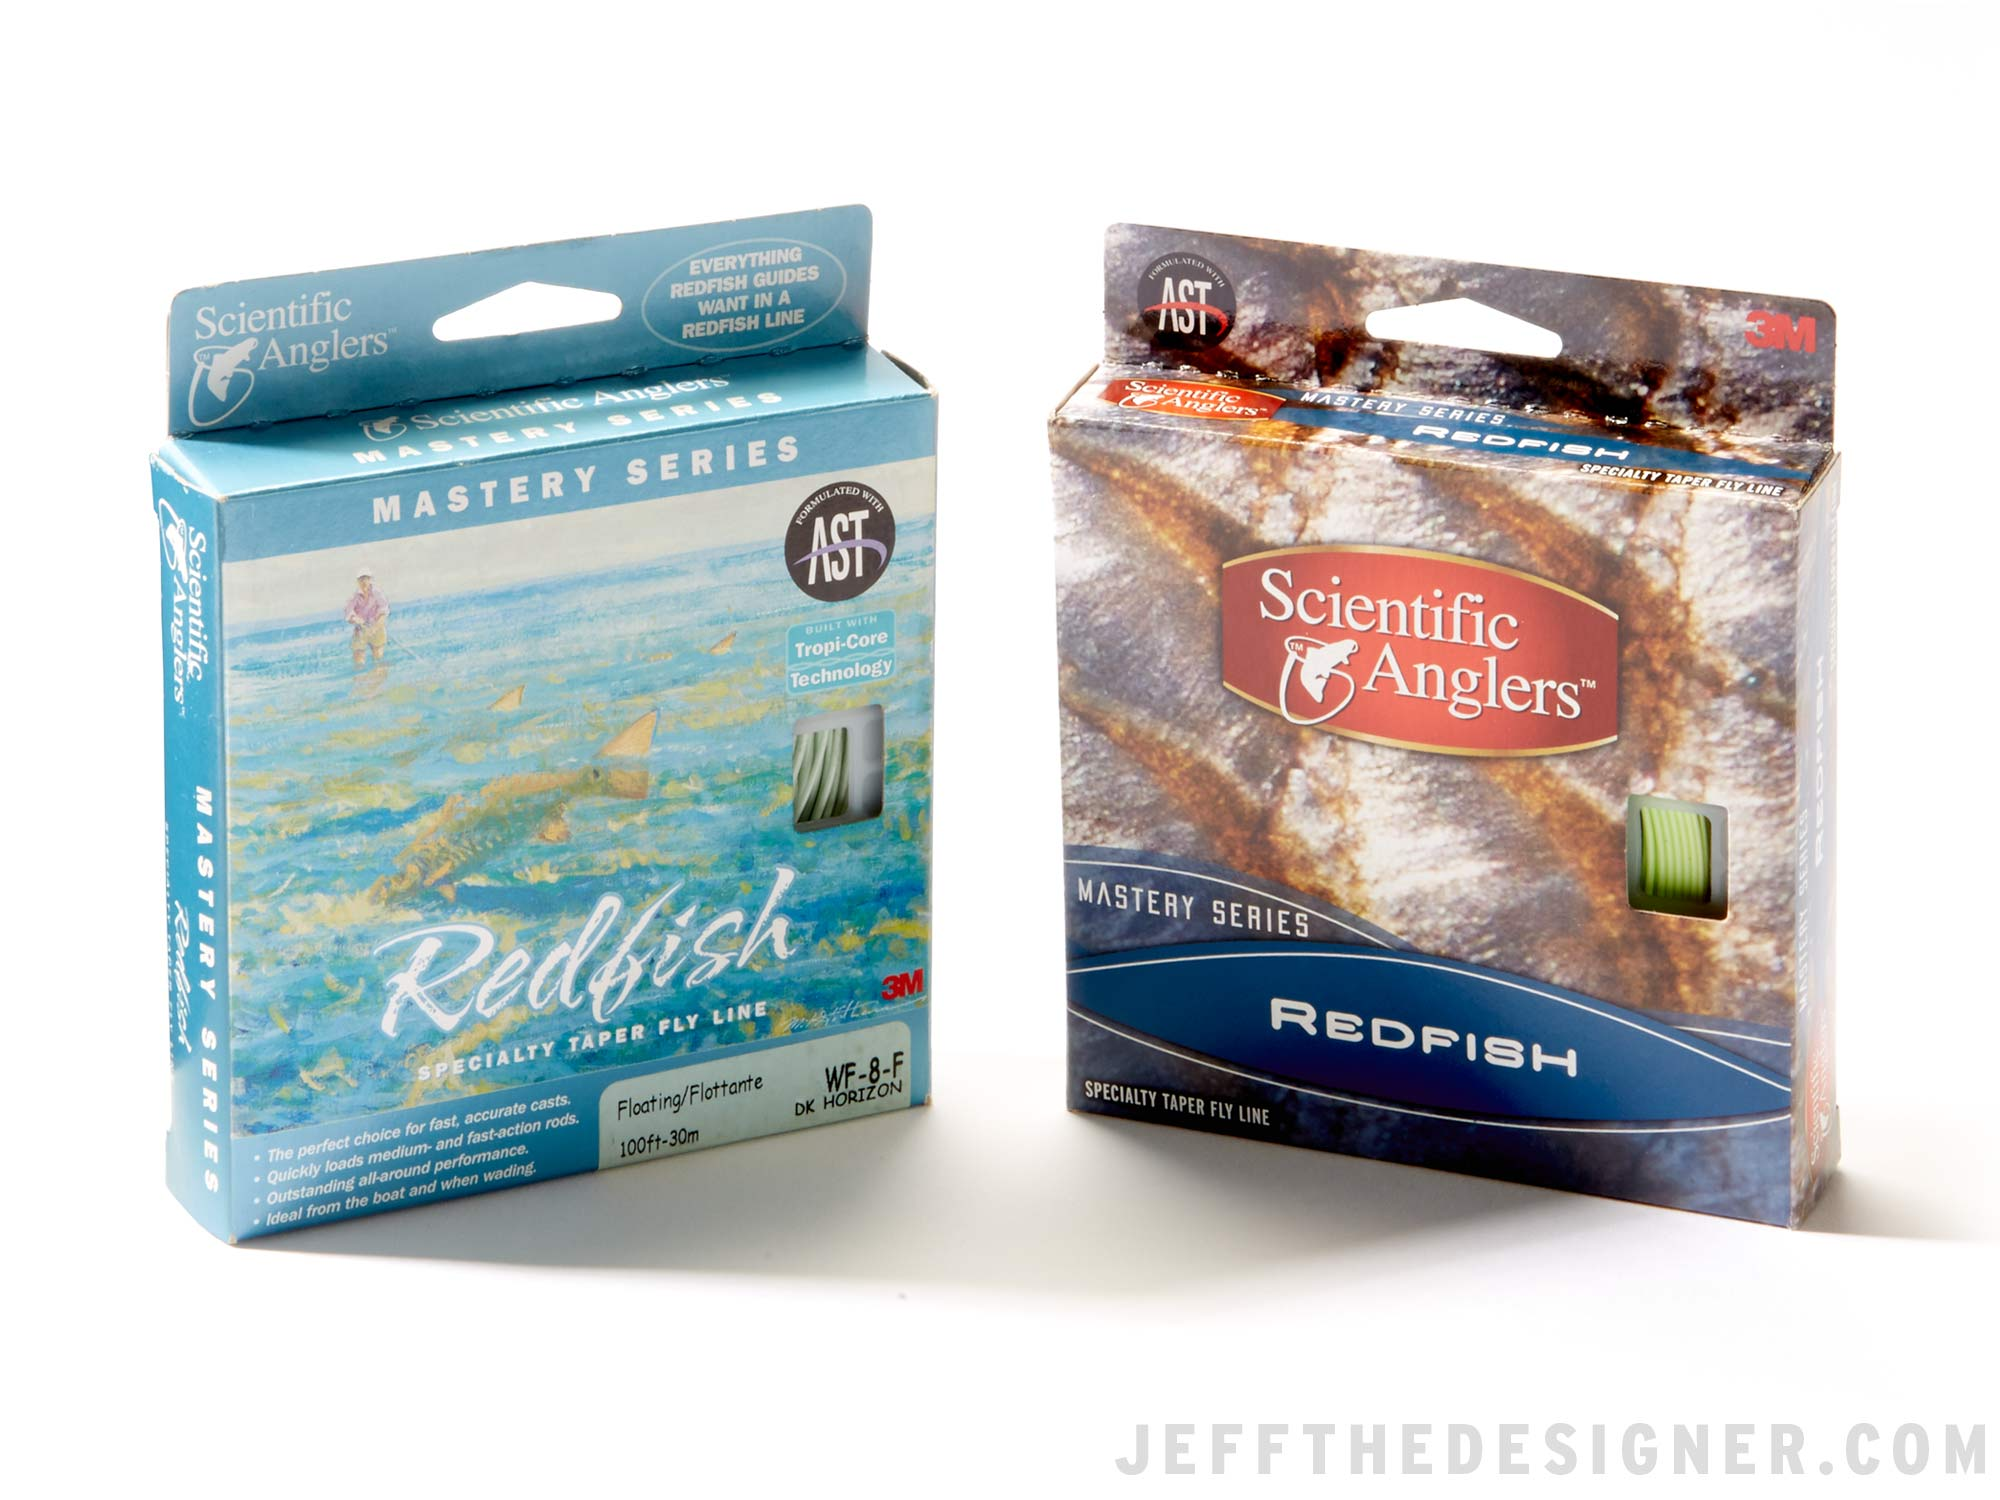 3M Scientific Anglers existing Redfish Fly Line package and redesigned package